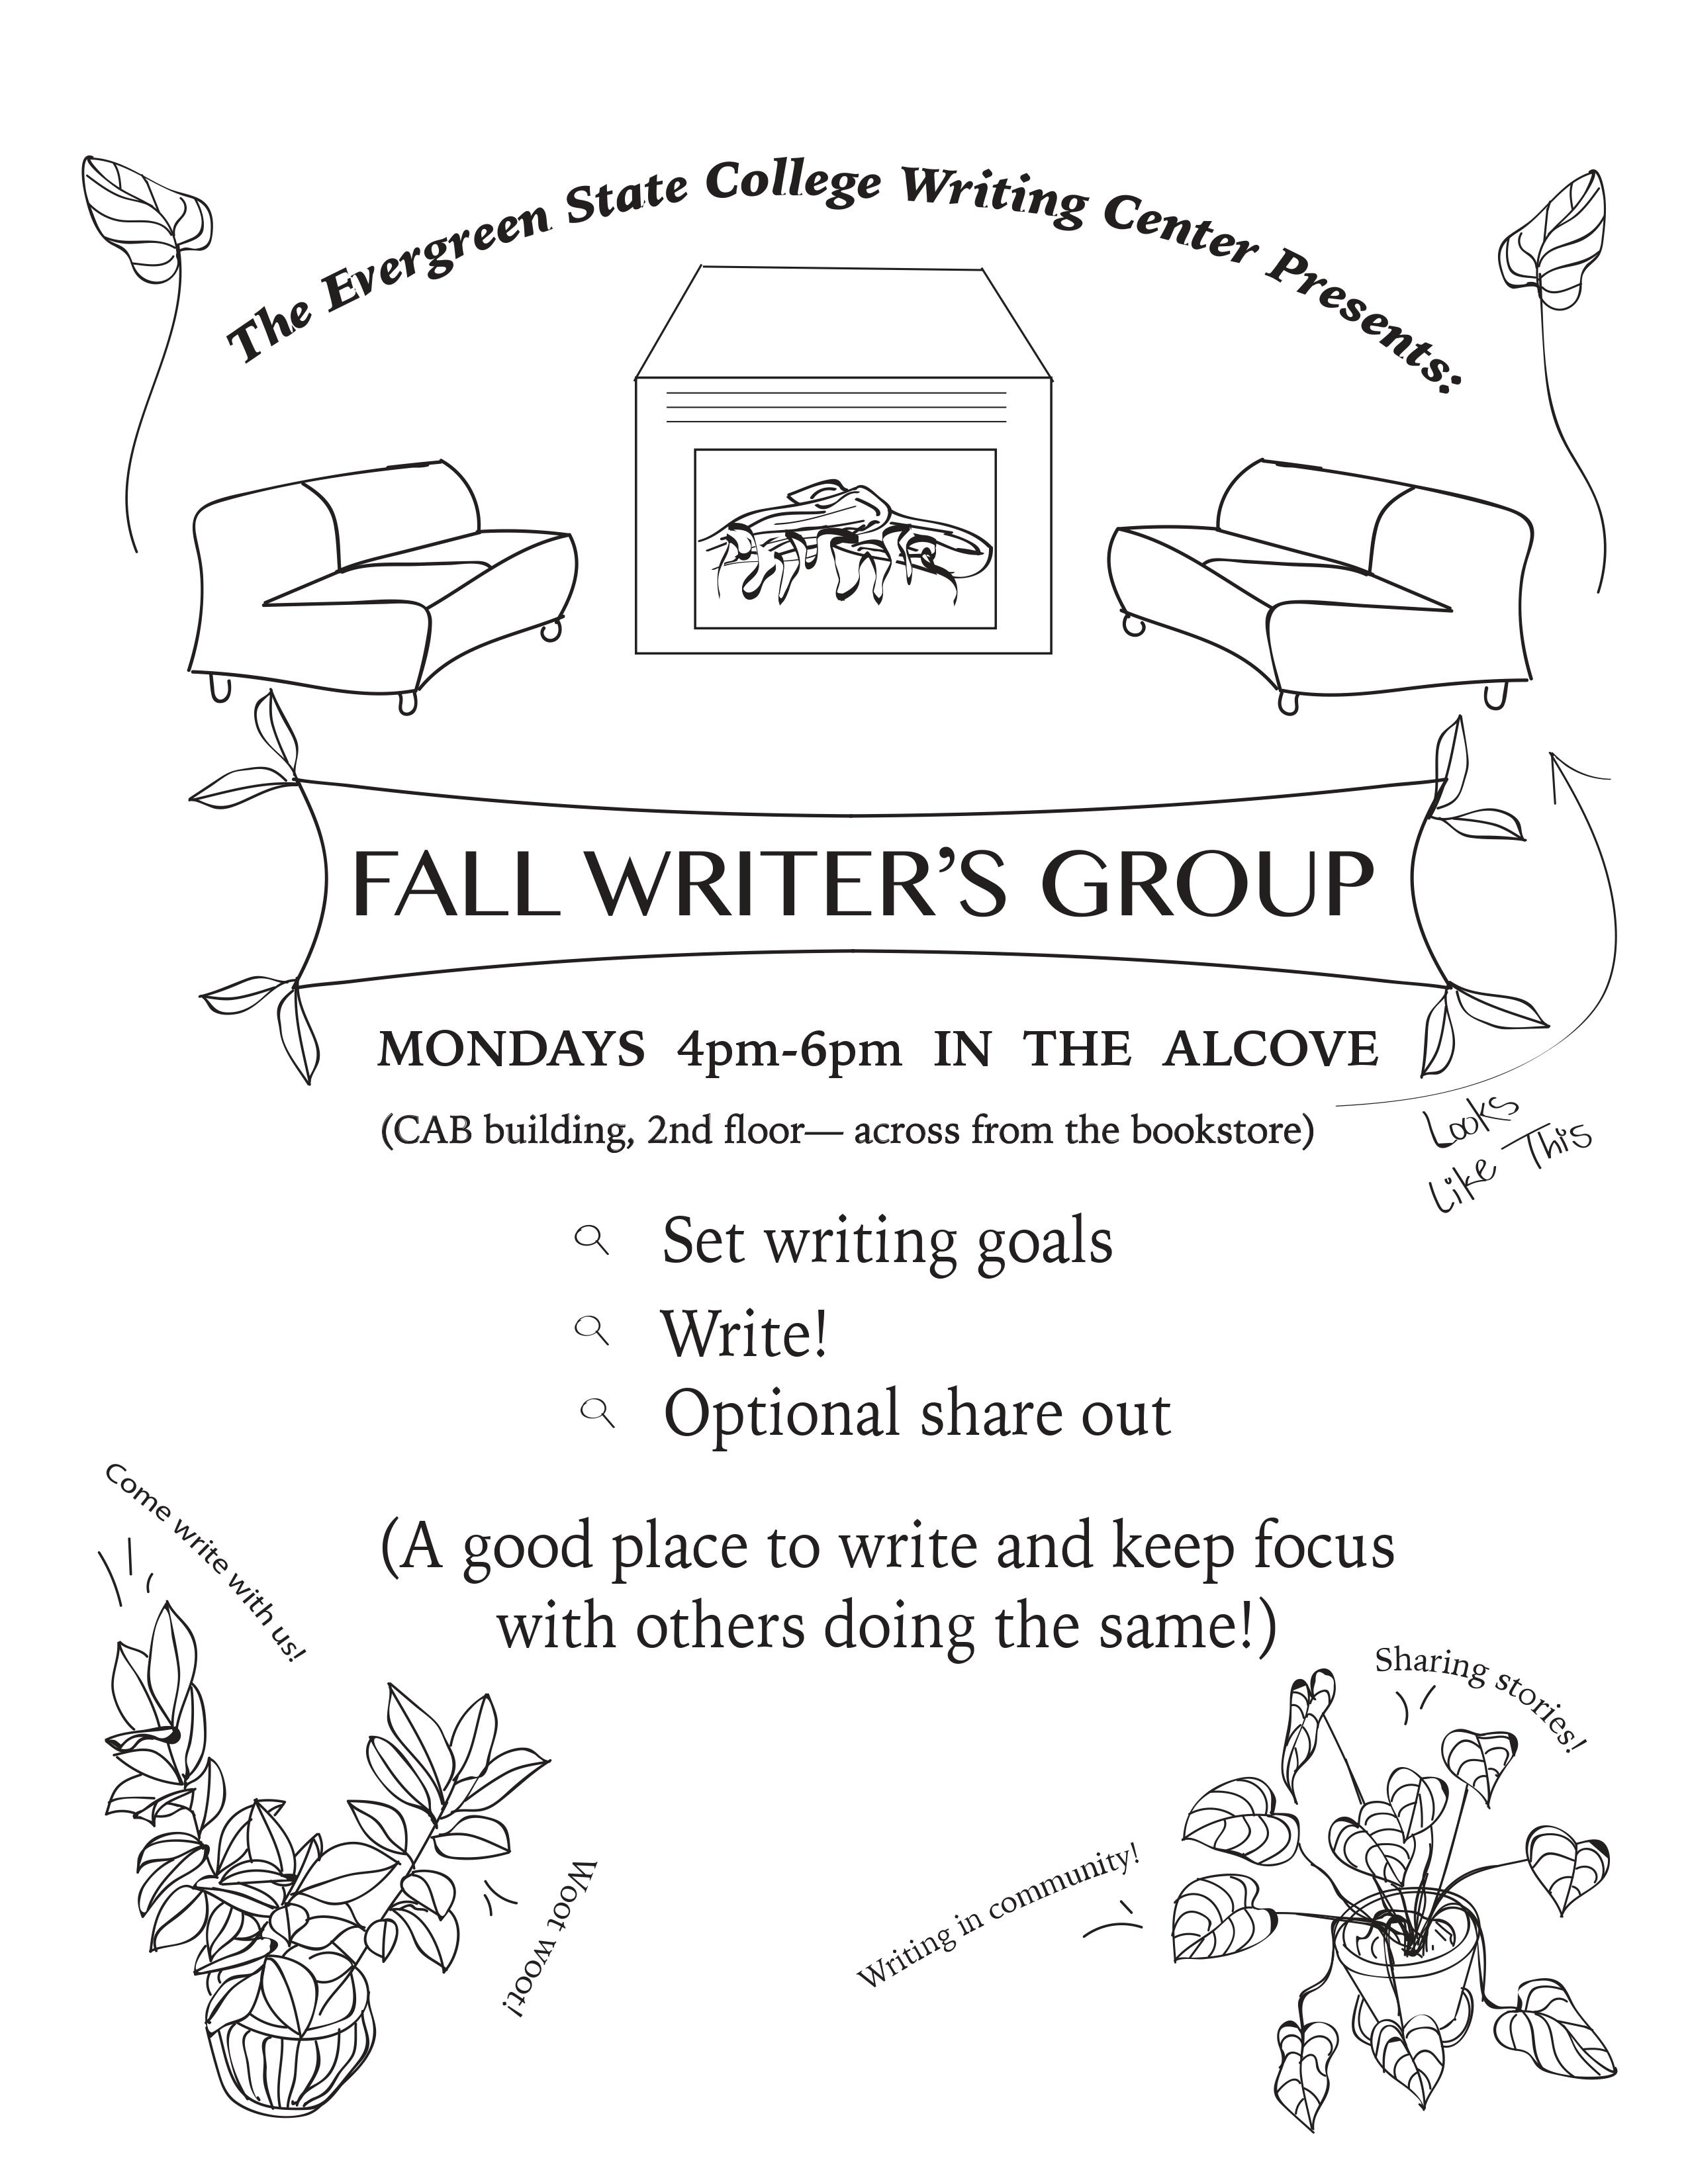 Fall Writing Group Flyer 2019